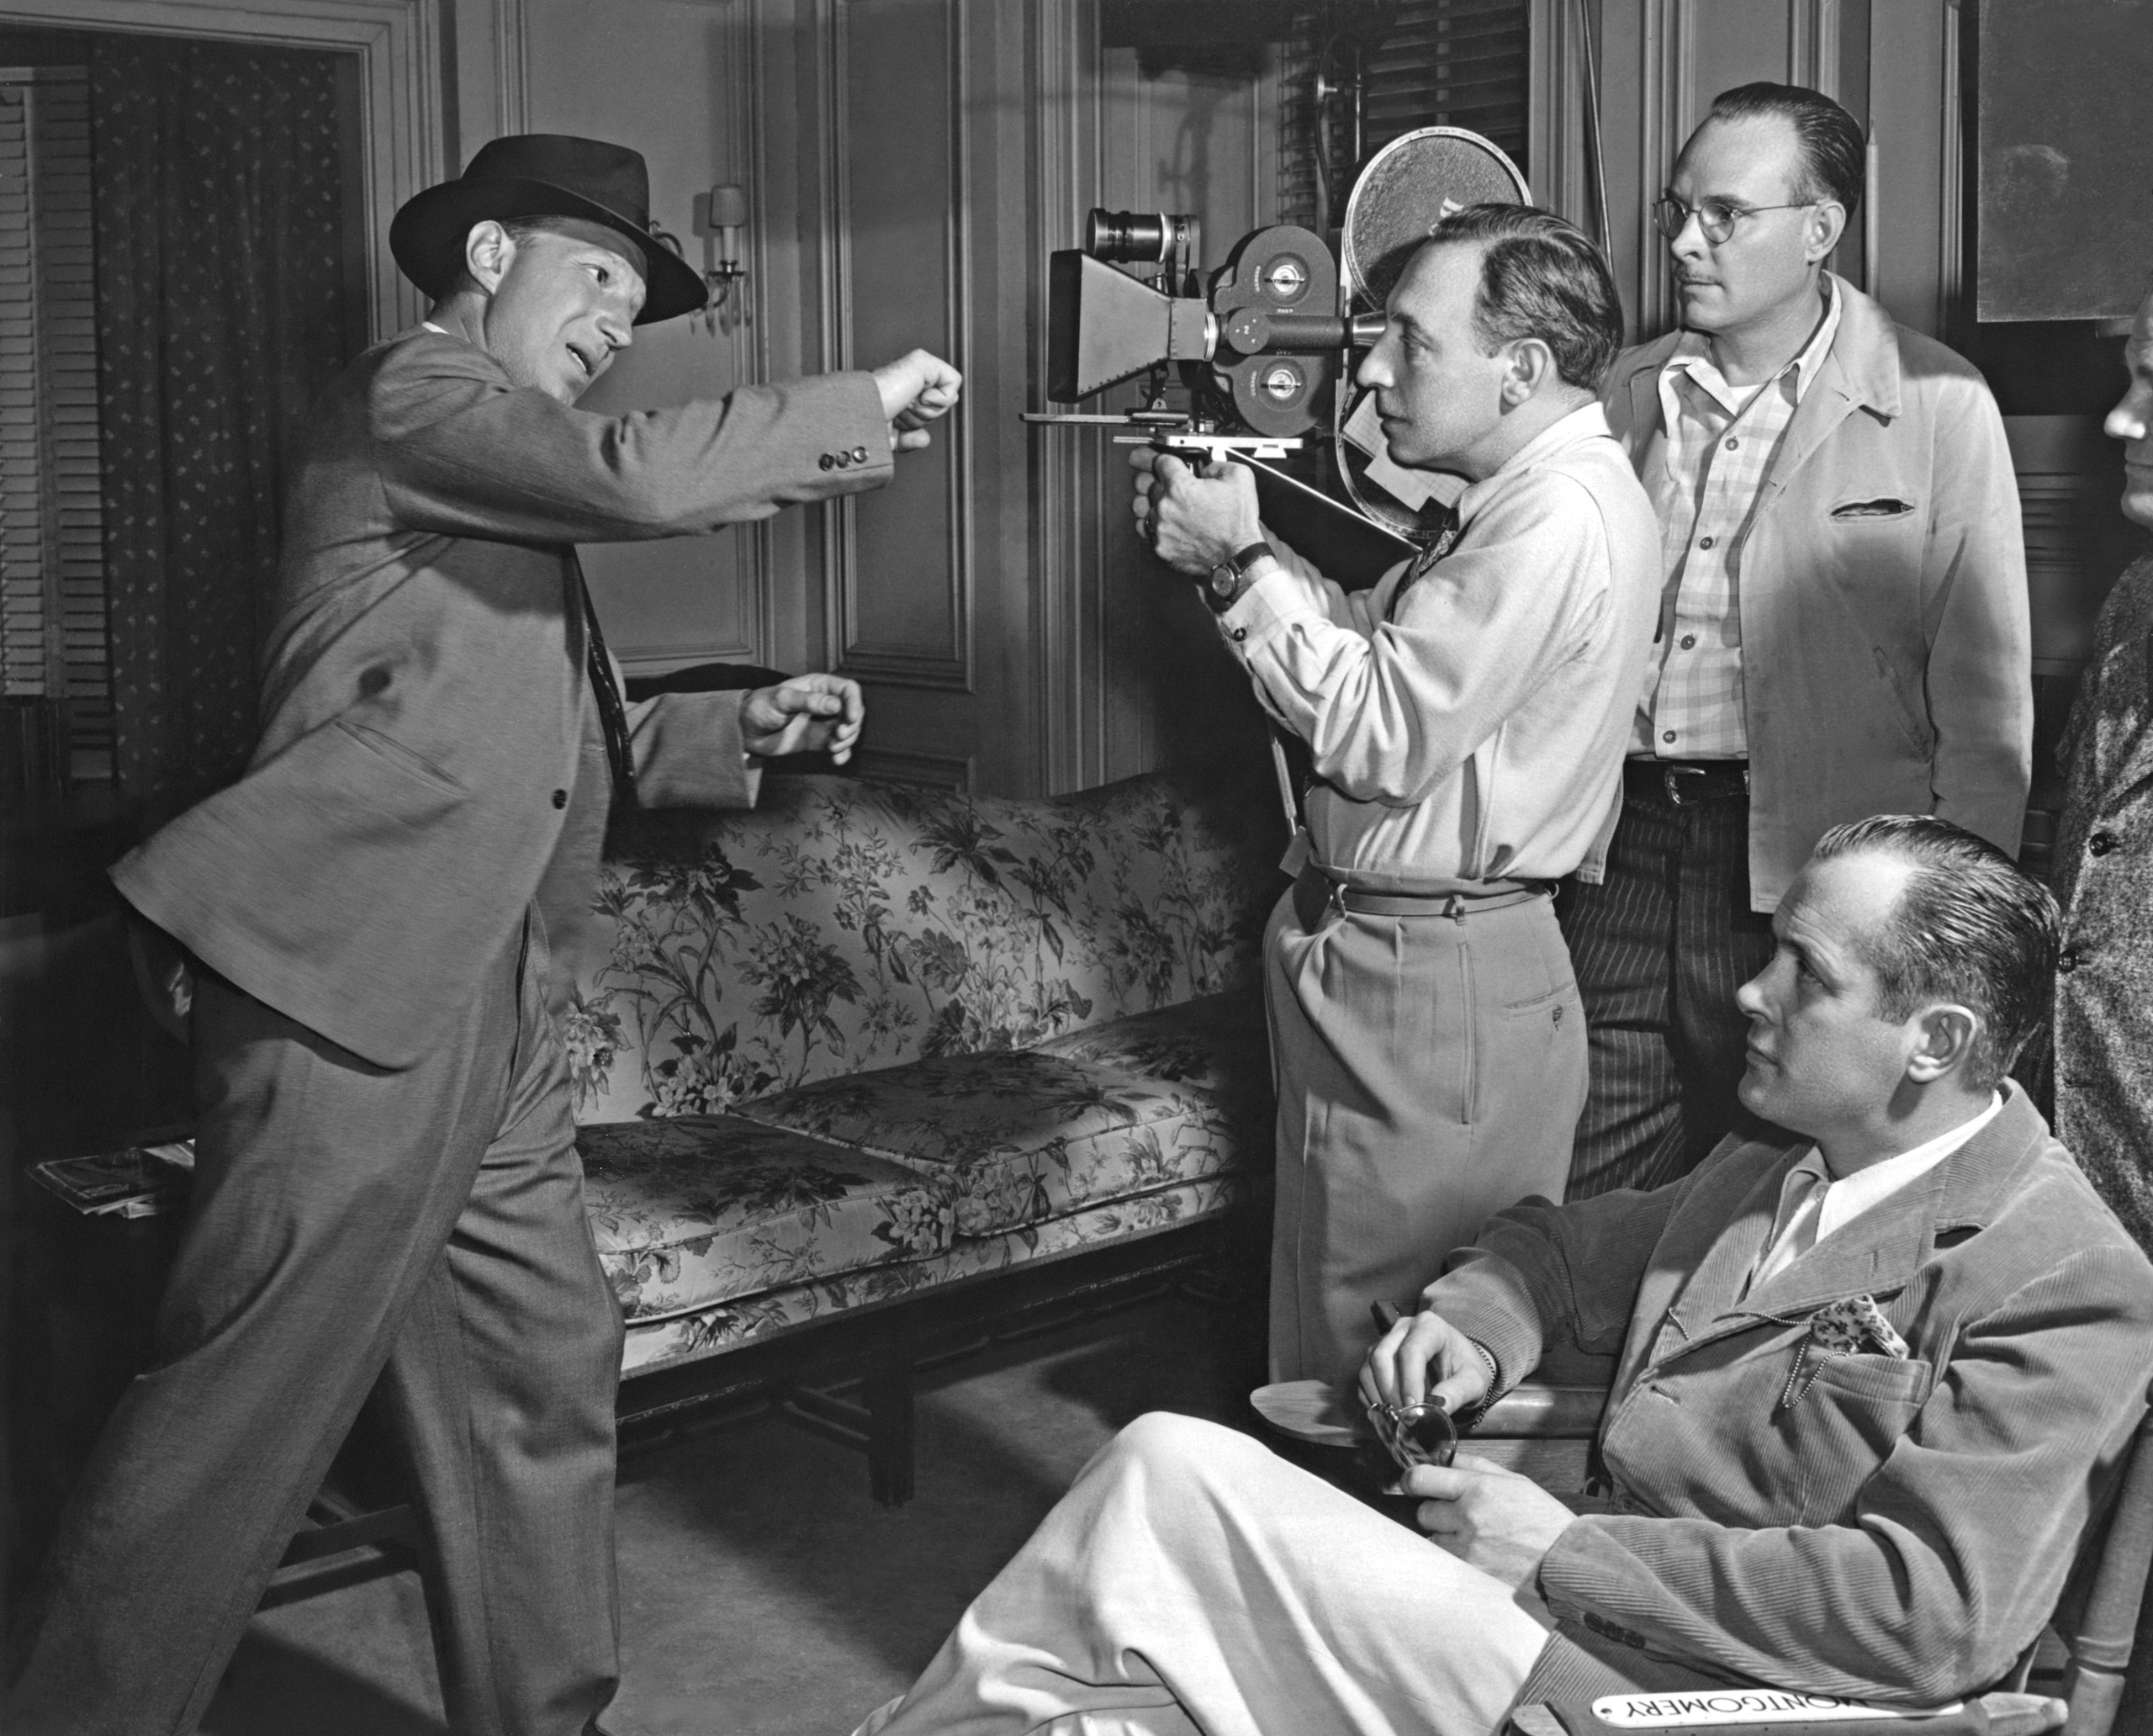 Lloyd Nolan throwing a punch towards cameraman Paul Vogel as actor-director Robert Montgomery looks on from his director's chair on the set of MGM's 'Lady in the Lake' in 1947.